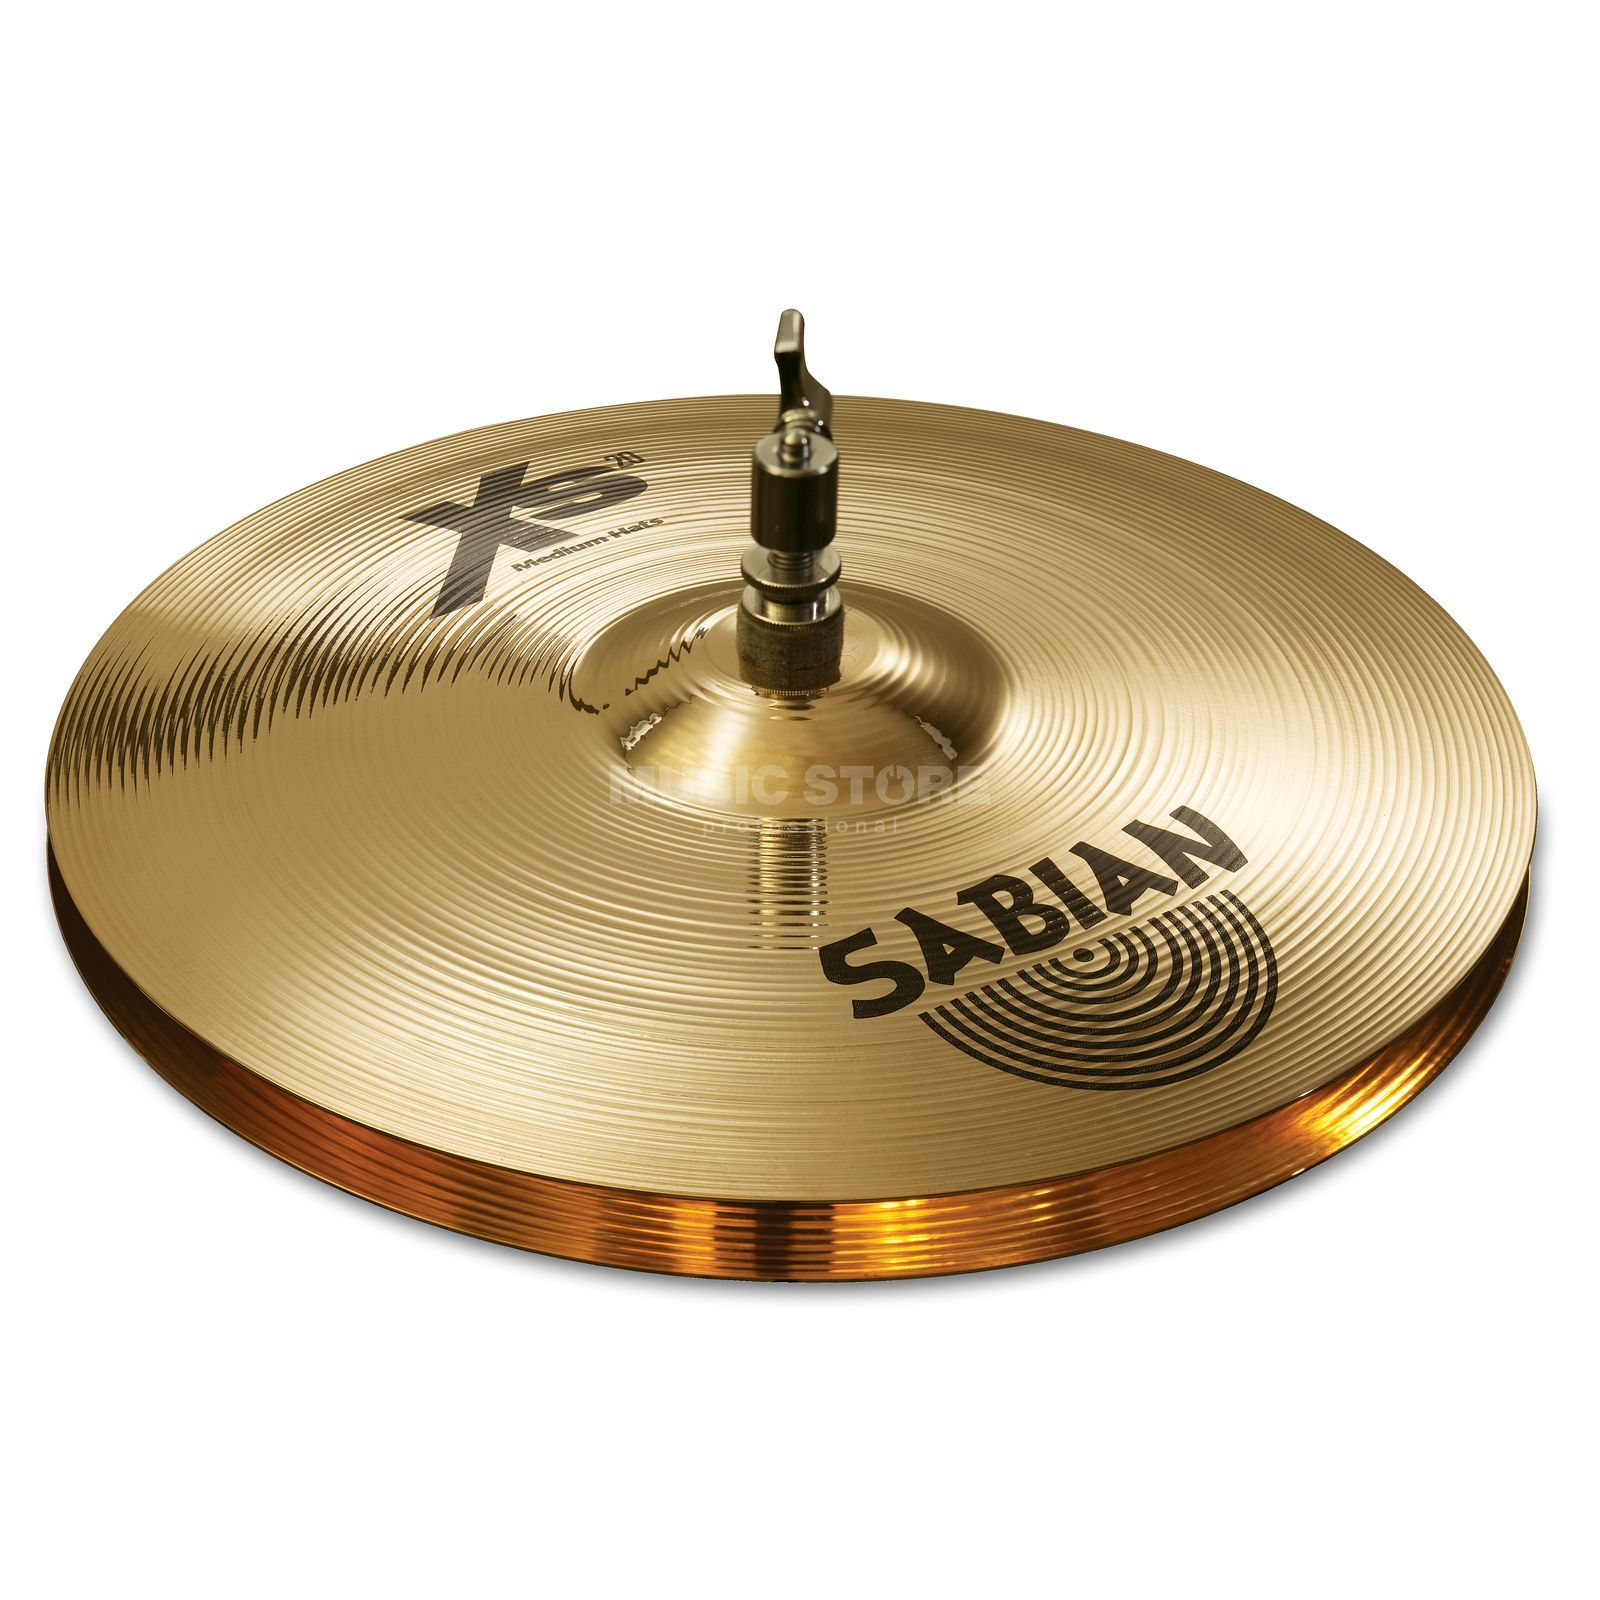 "Sabian XS20 Medium HiHat 14"", Brilliant Finish Produktbild"